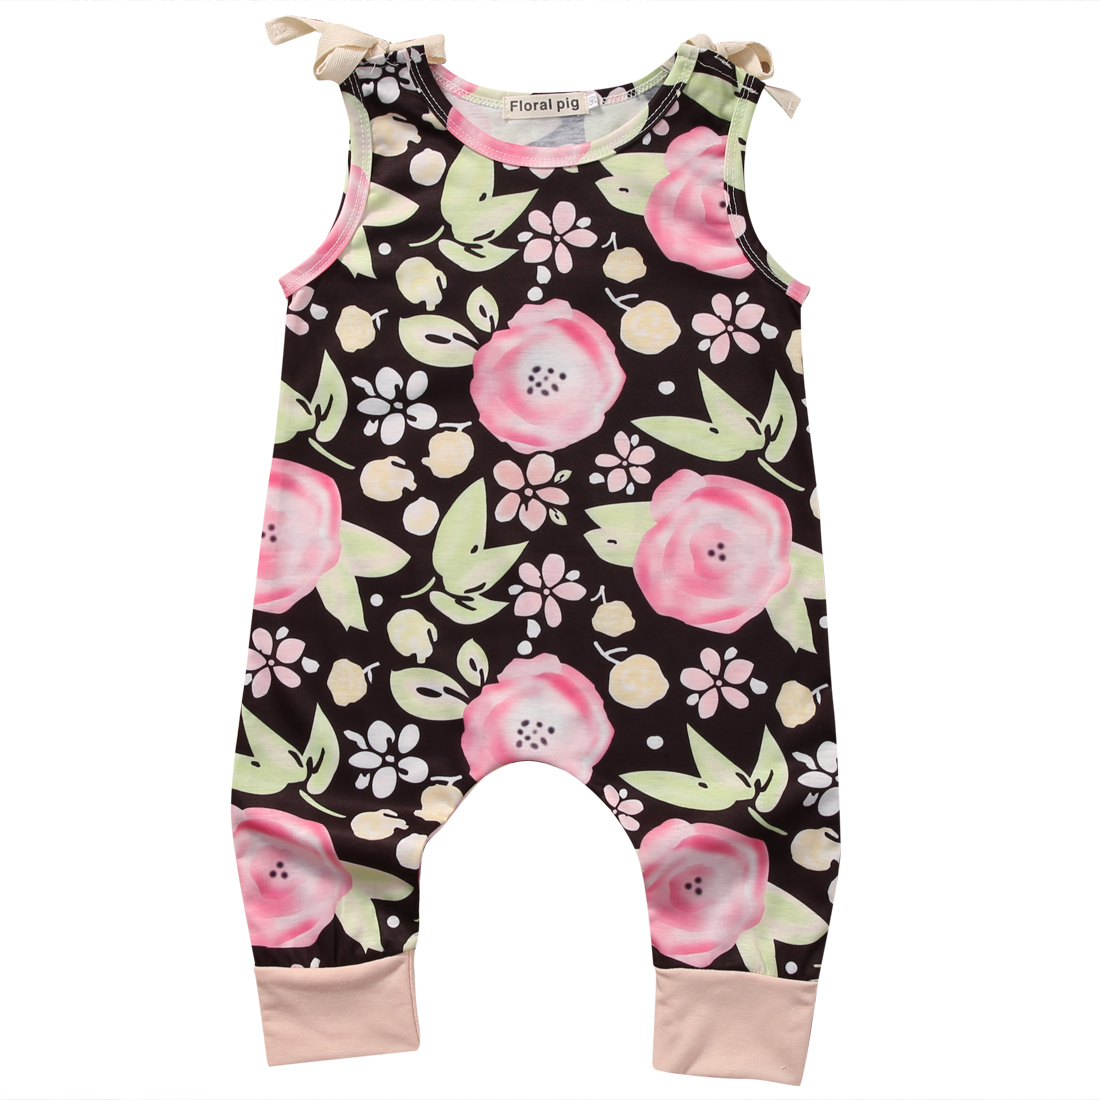 34149746a873 2017 Summer Floral Clothes Toddler Kids Girls Sleeveless Romper Jumpsuit  Outfit Sunsuit 0-4Y